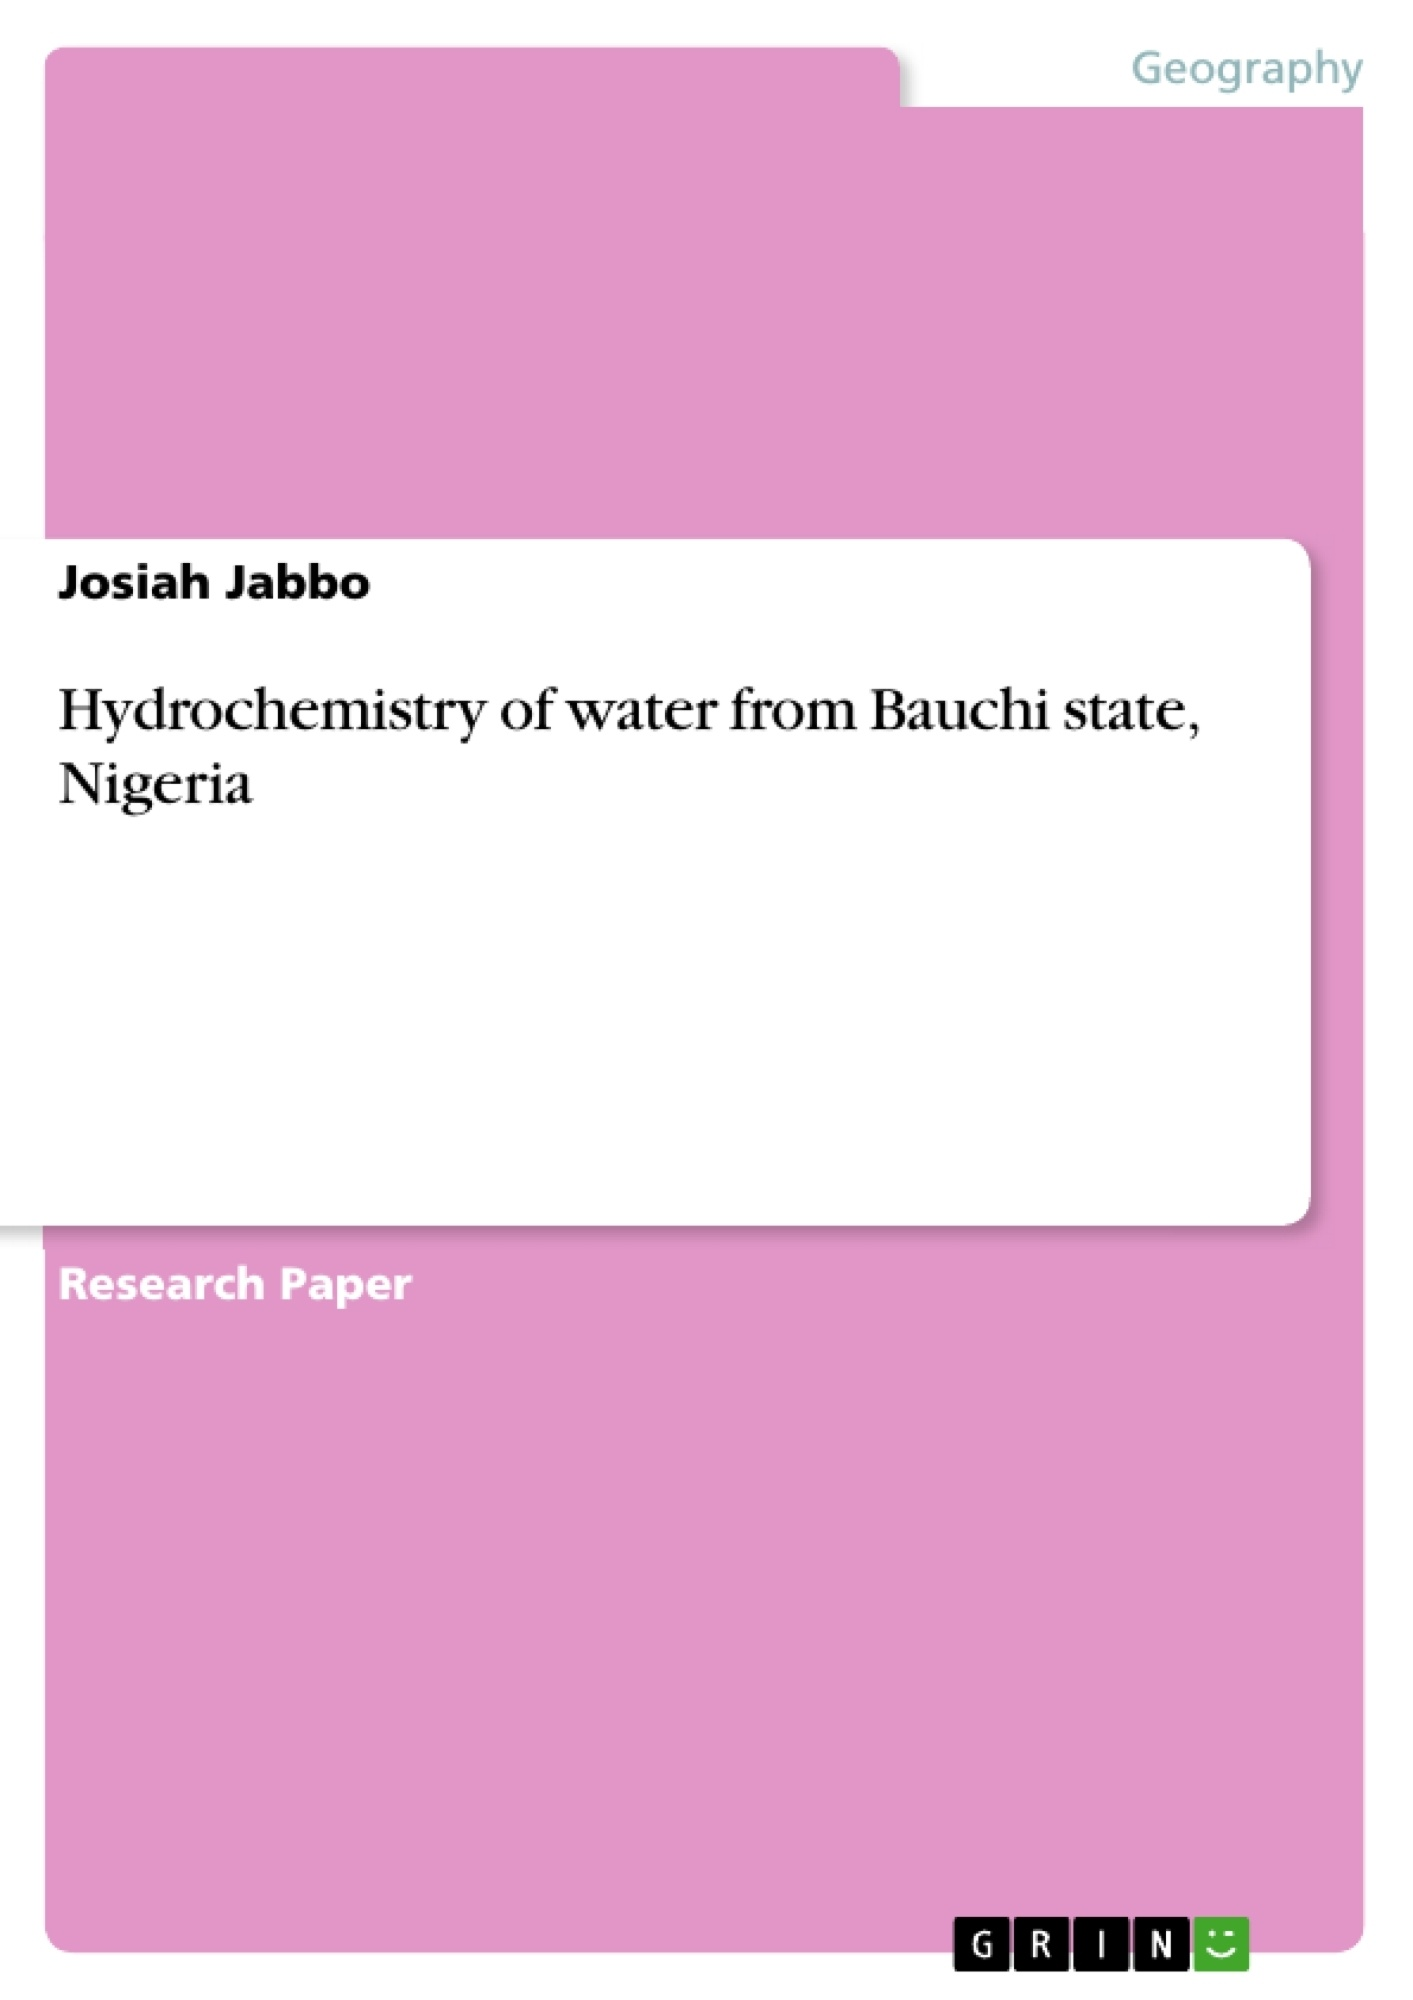 Title: Hydrochemistry of water from Bauchi state, Nigeria